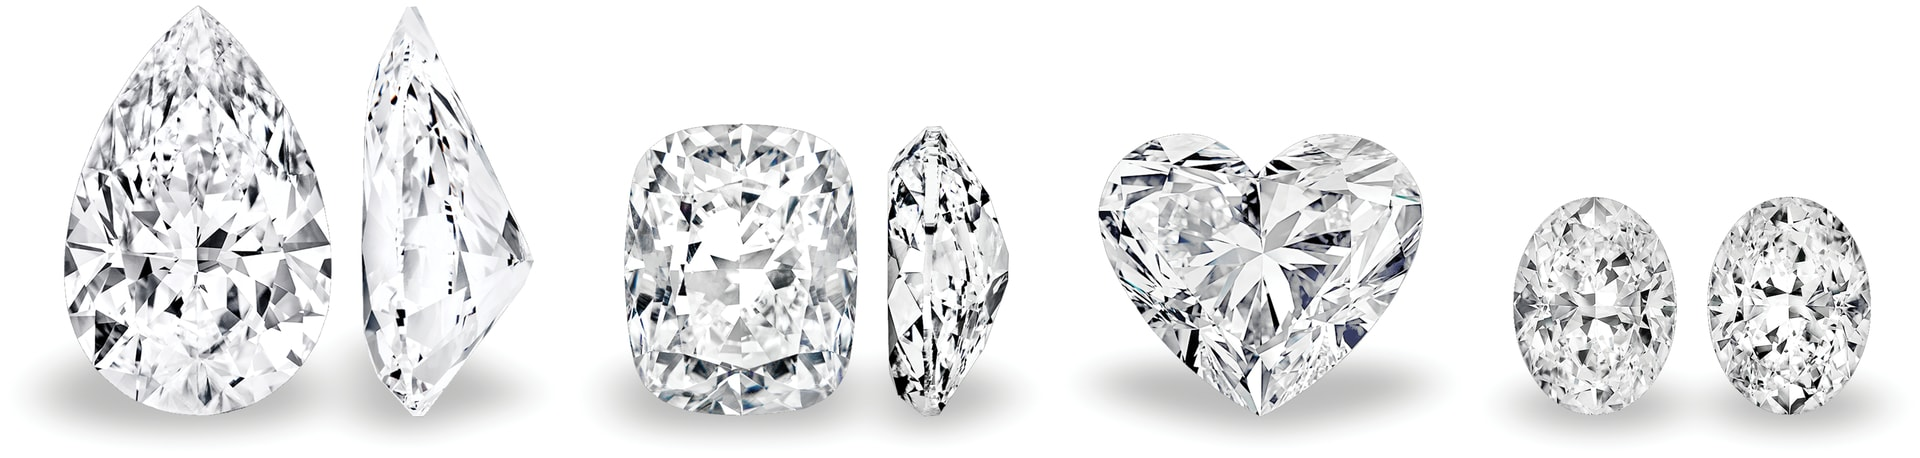 comparison diamond purity clarity of